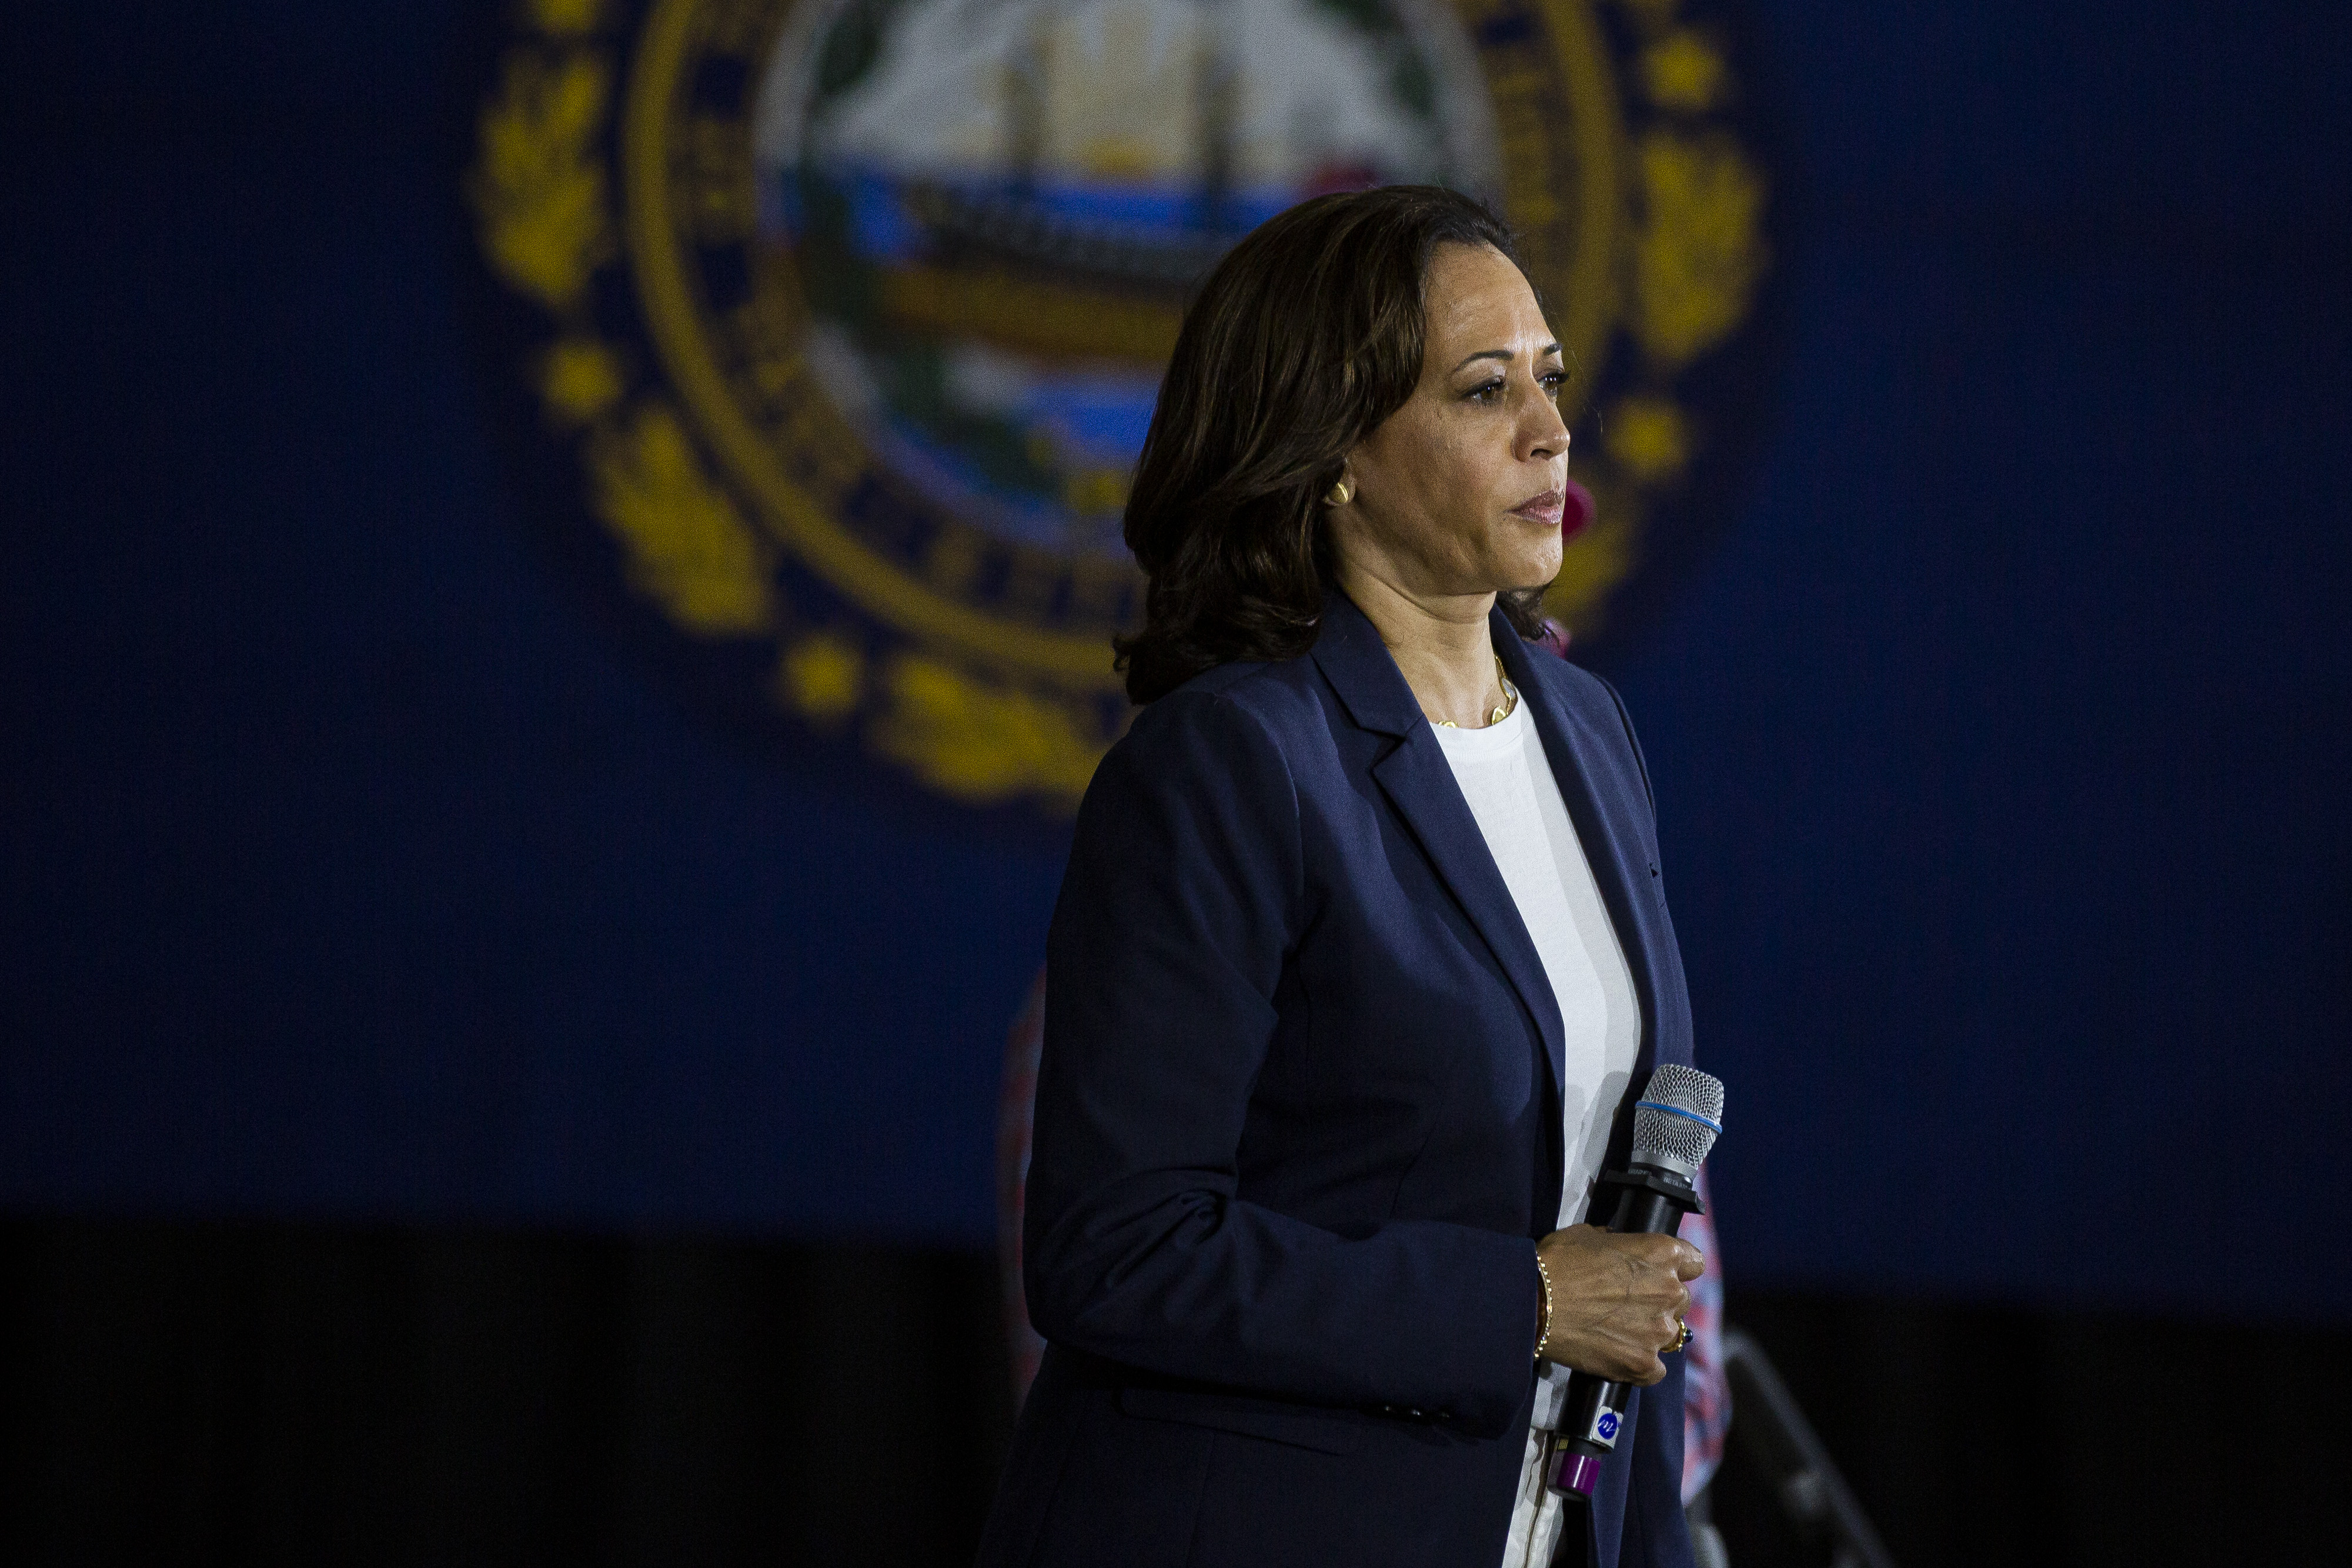 Senator Kamala Harris Holds Town Hall In New Hampshire